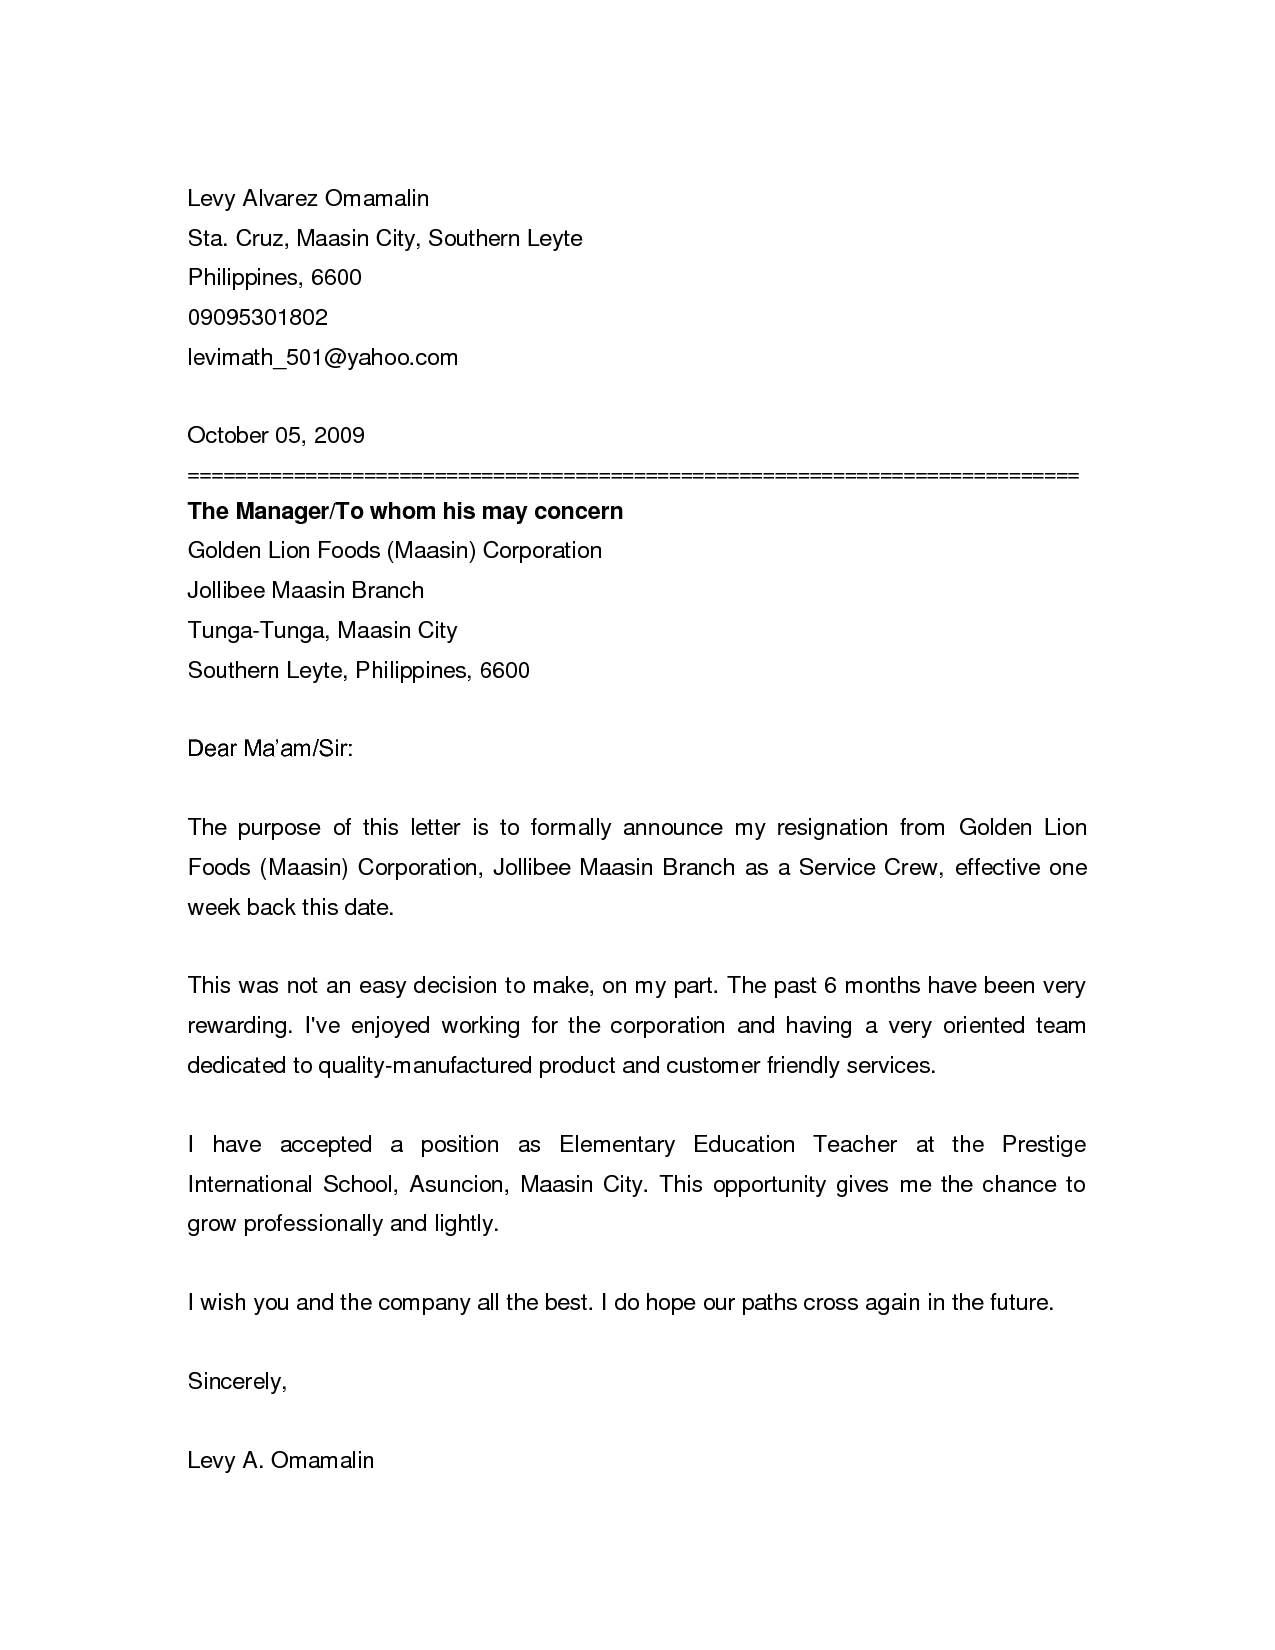 Resignation Announcement Letter   This Resignation Announcement Letter To  Let Co Workers Know That You  Teacher Resignation Letter